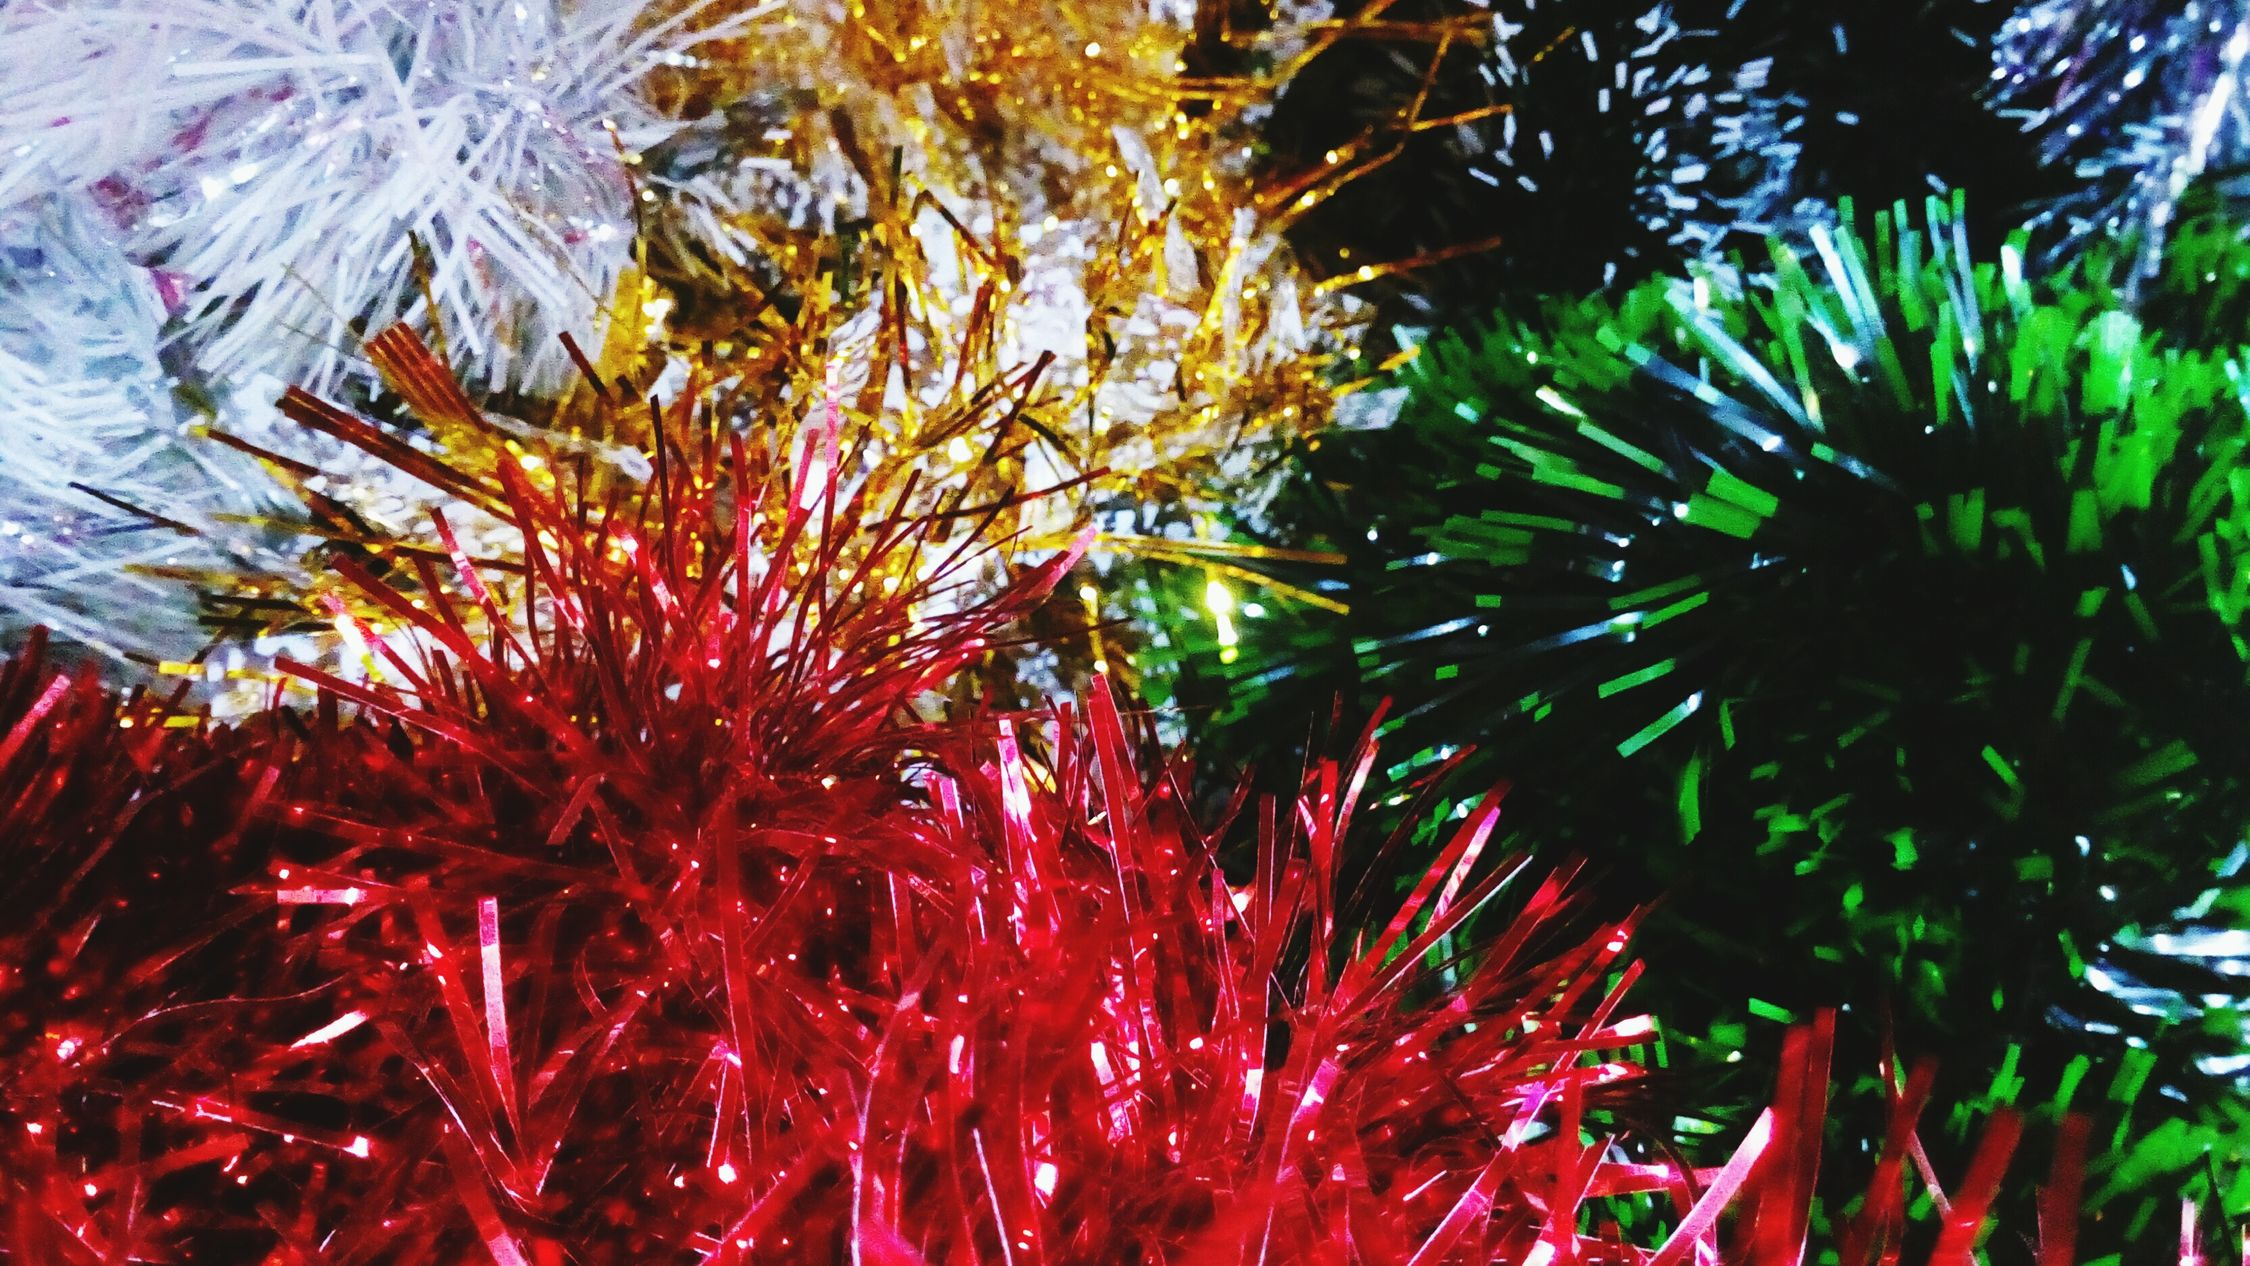 Green Color 🎄 Red Color 🎈 Yelow Color 🎁 Holyday Is Coming 🎉🎉🎉